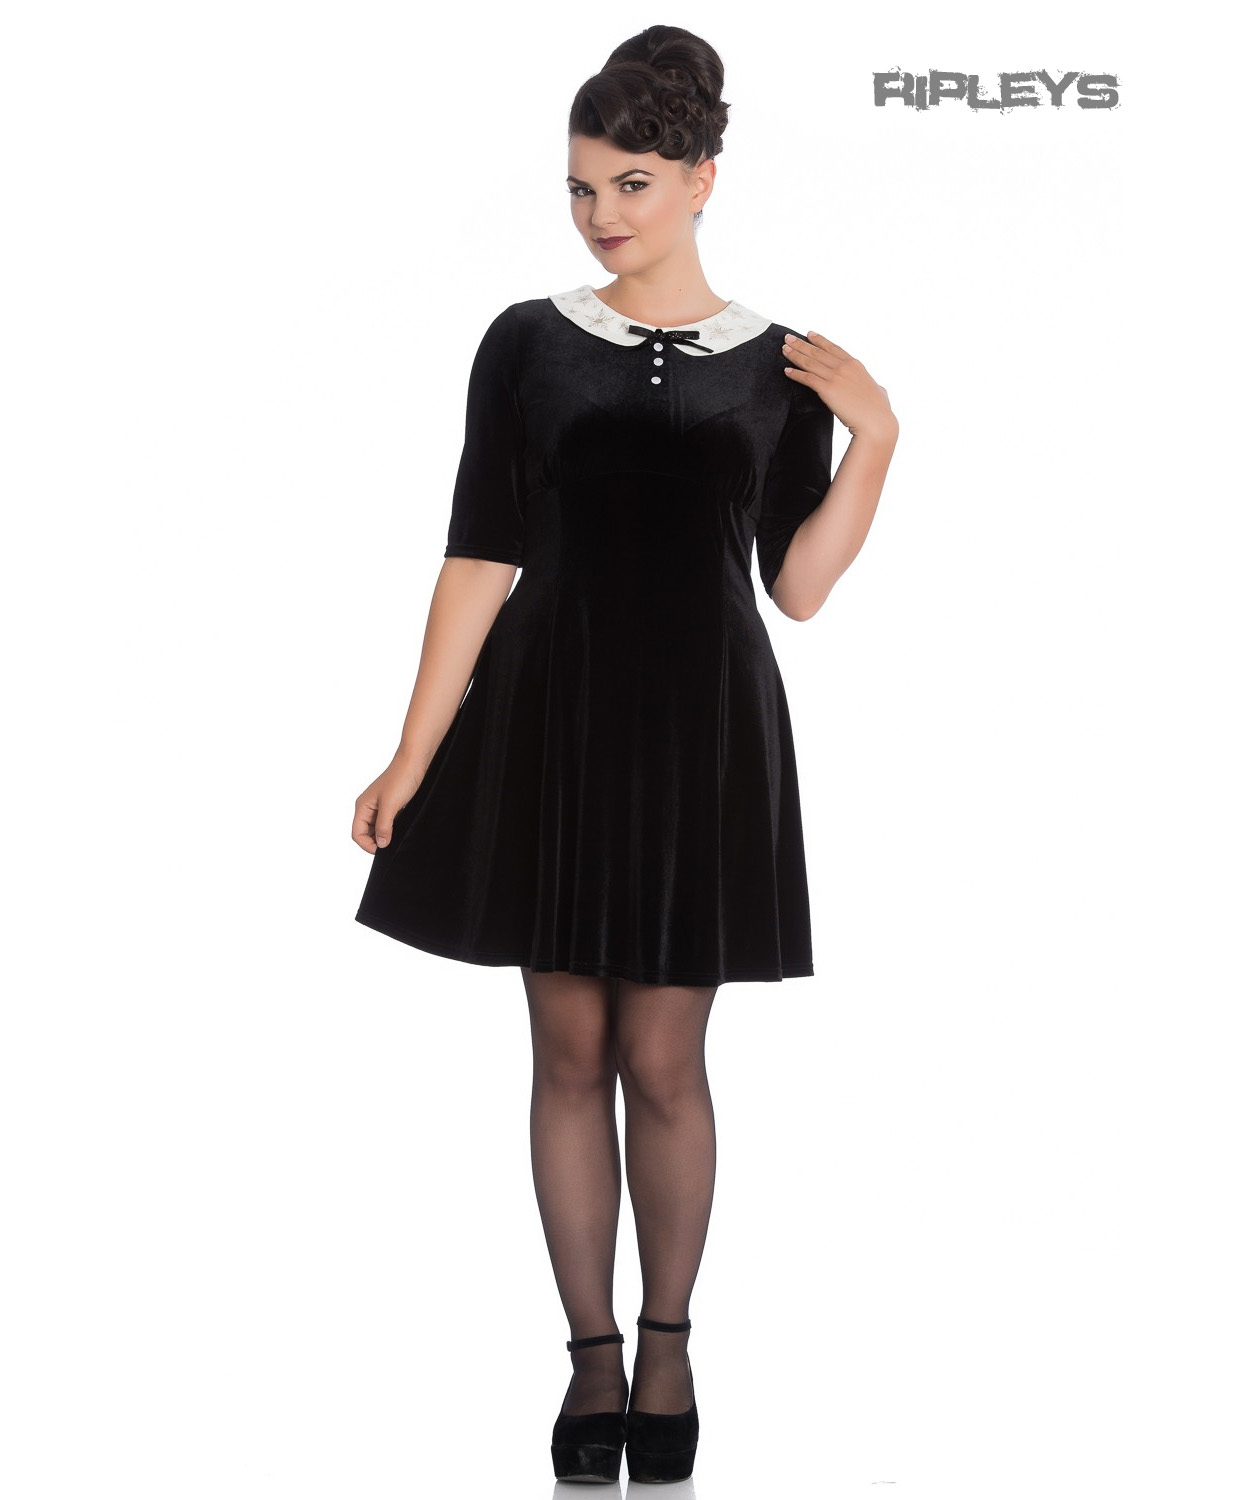 Hell-Bunny-Mini-Skater-Dress-Festive-Christmas-SNOWY-Black-Snowflakes-All-Sizes thumbnail 30